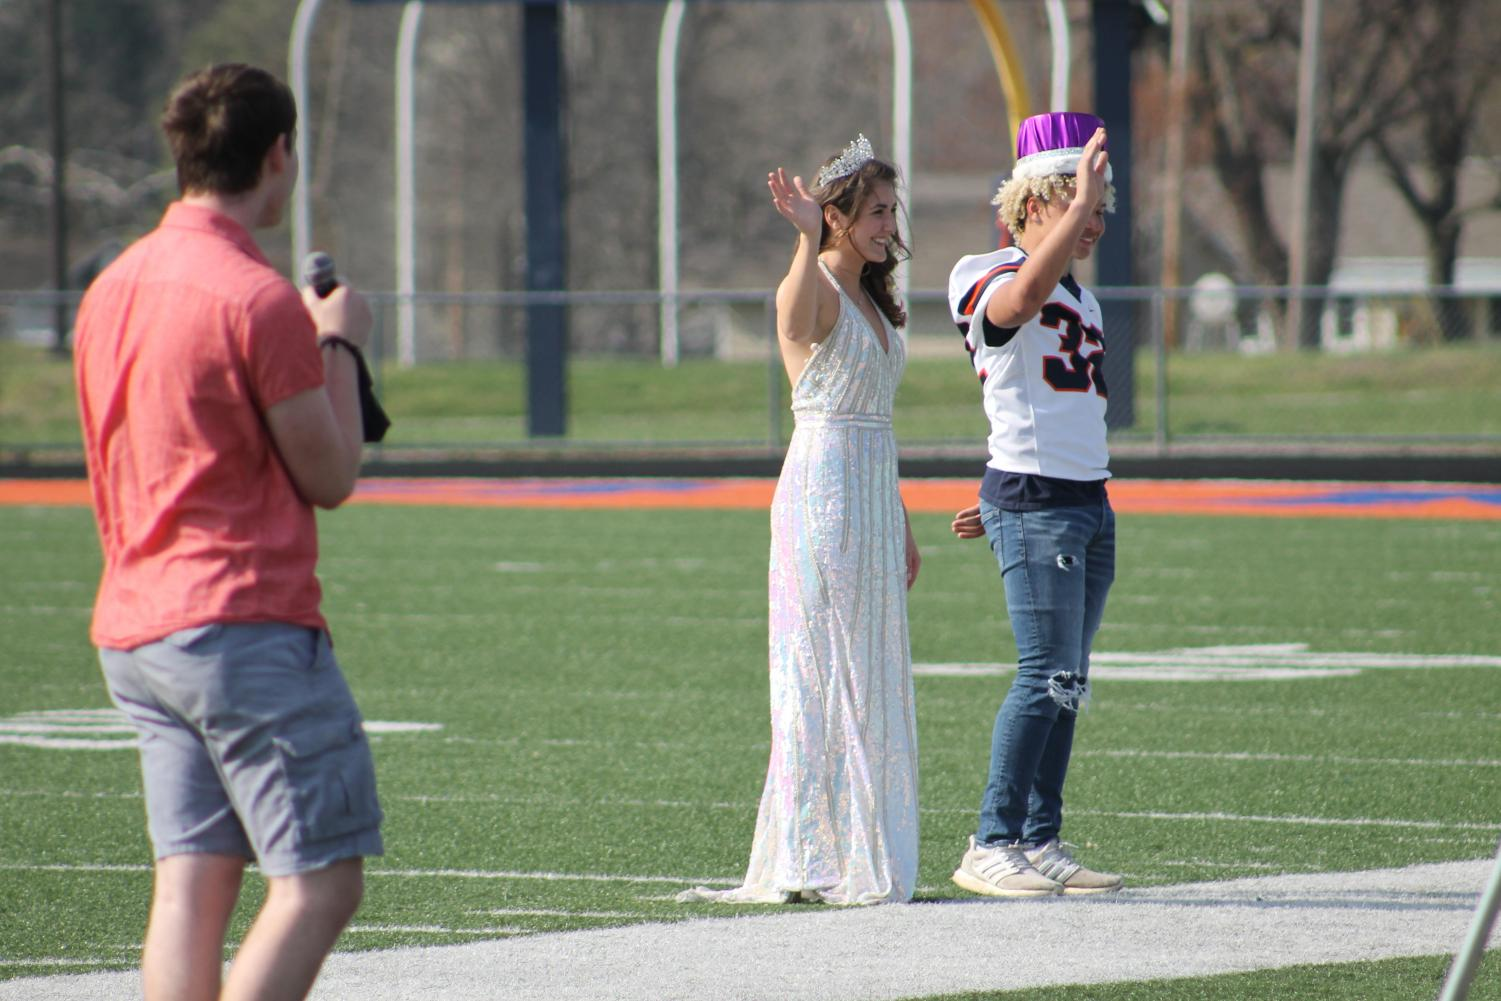 """Noah Adams (12) sings """"There She Is"""" by Frank Turner as Annabelle Barnstable and Jaxon Allen wave to the people in the stands."""